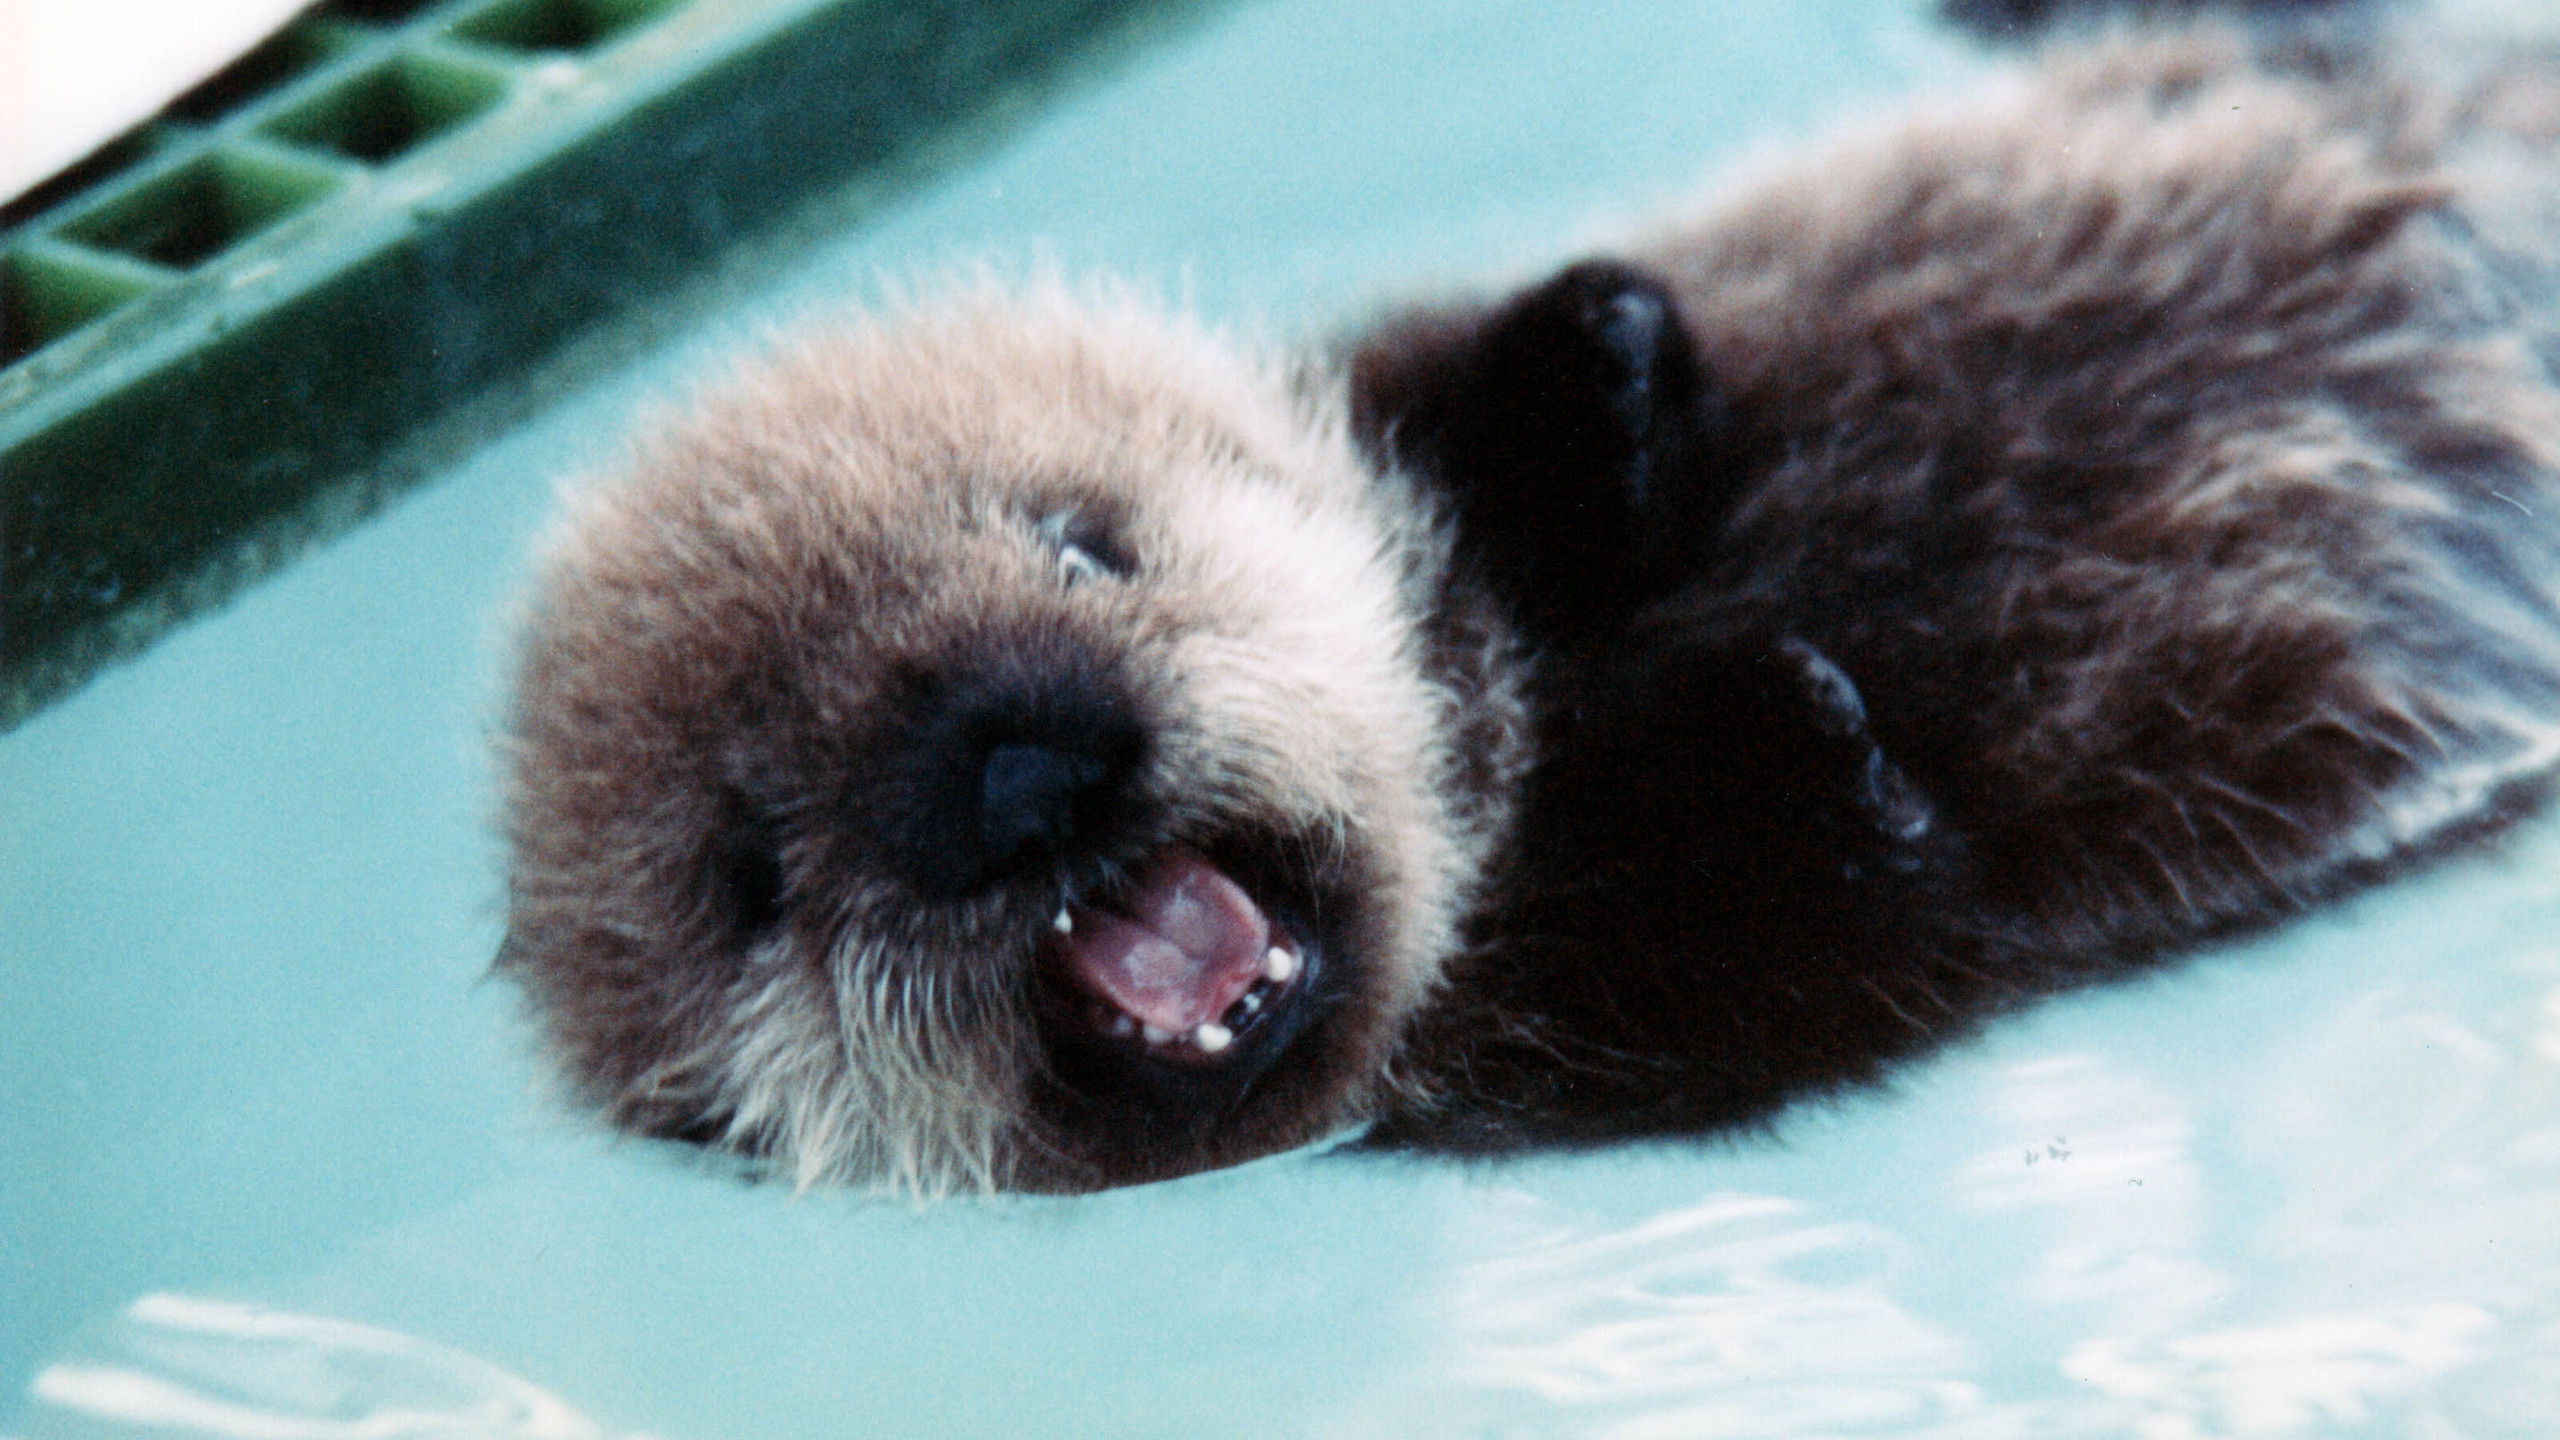 A baby otter cries for its mother